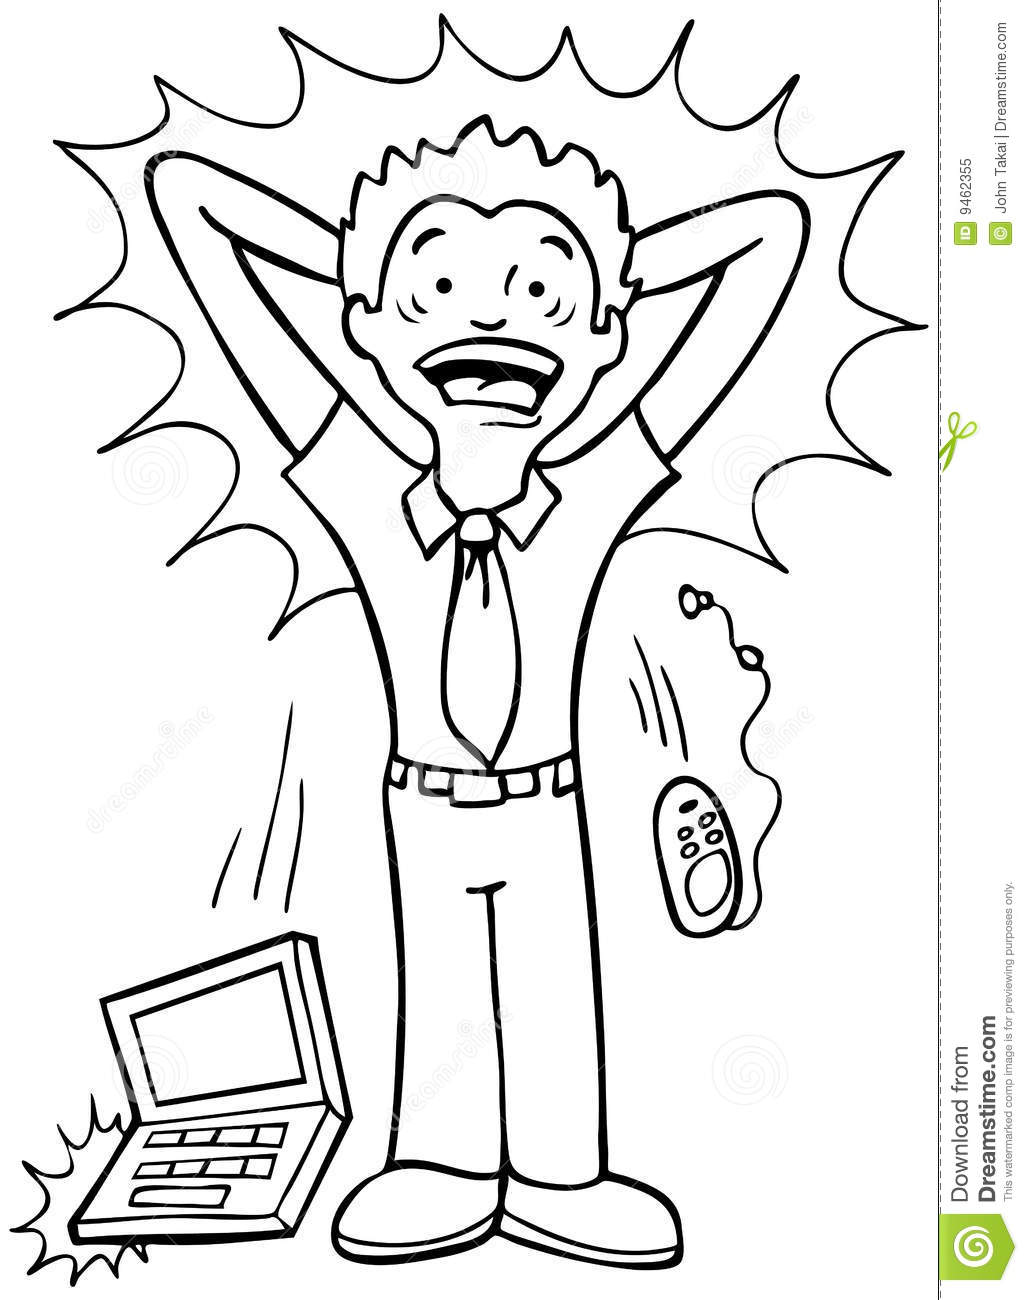 Stressed Worker - Black And White Royalty Free Stock Photo ...